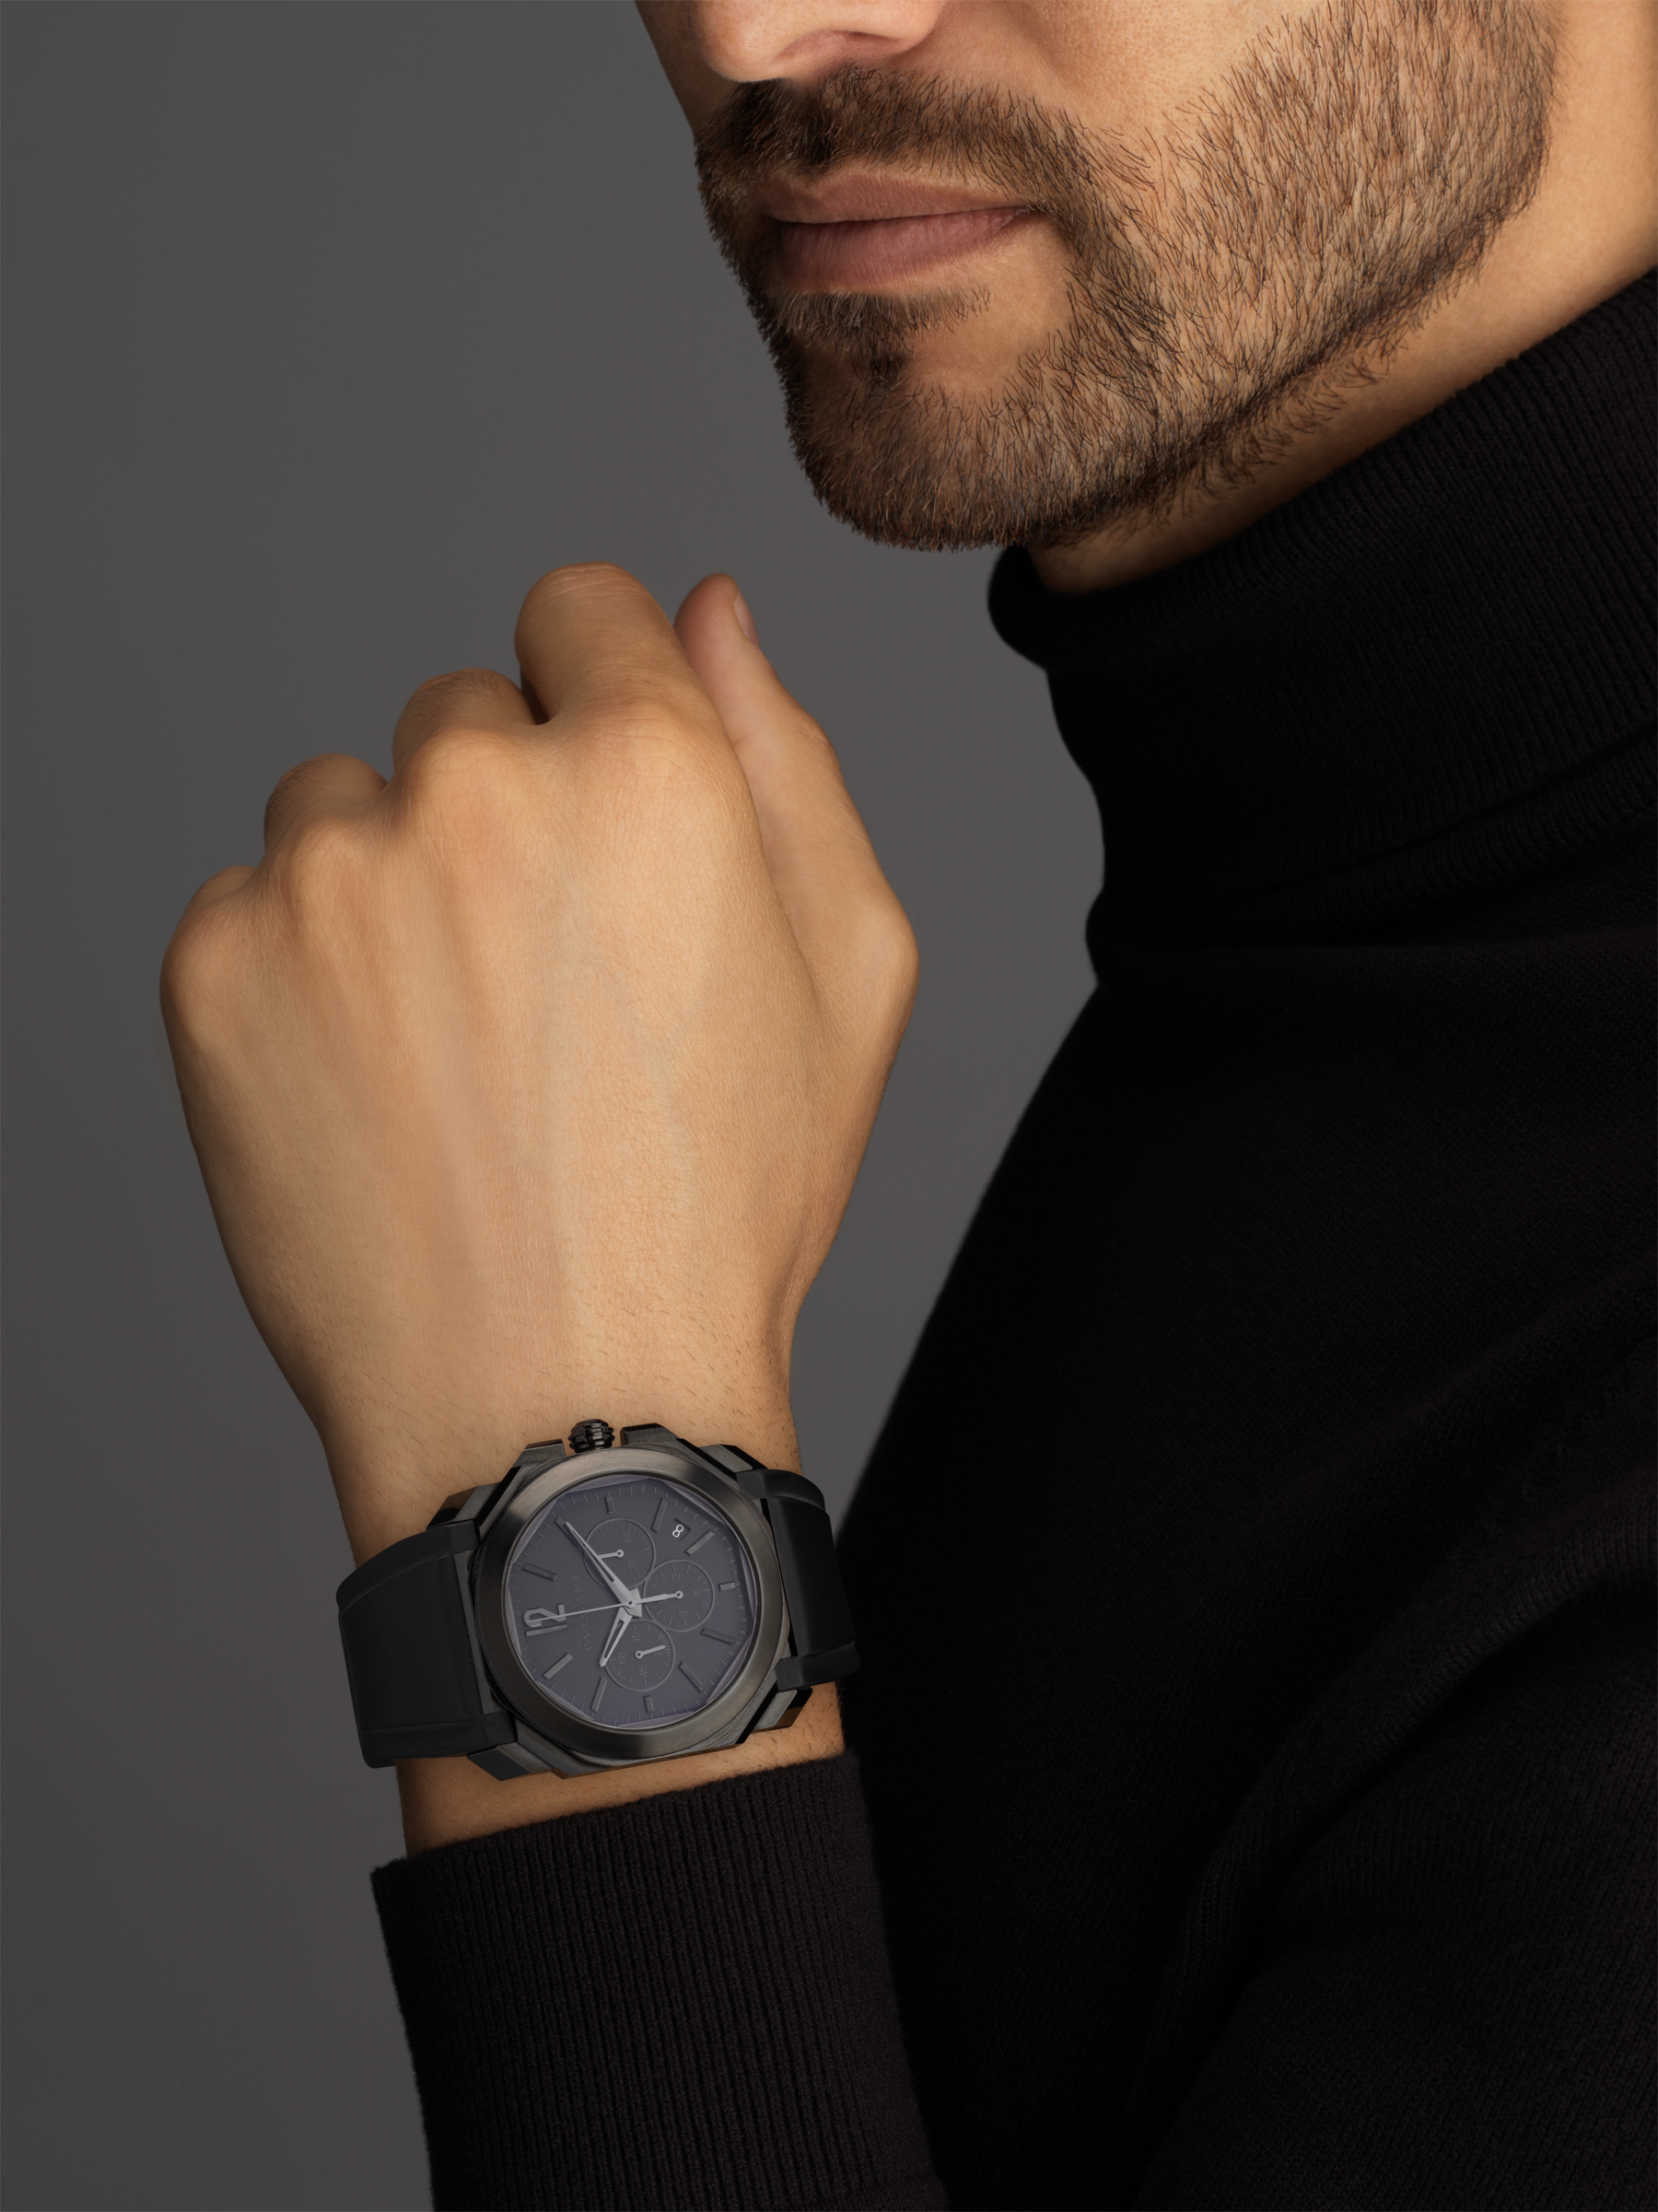 Octo L'Originale watch with mechanical manufacture movement, integrated high-frequency chronograph (5Hz), column wheel mechanism, silicon escapement, automatic winding and date, stainless steel case treated with black Diamond Like Carbon, grey dial and black rubber bracelet 103027 image 4